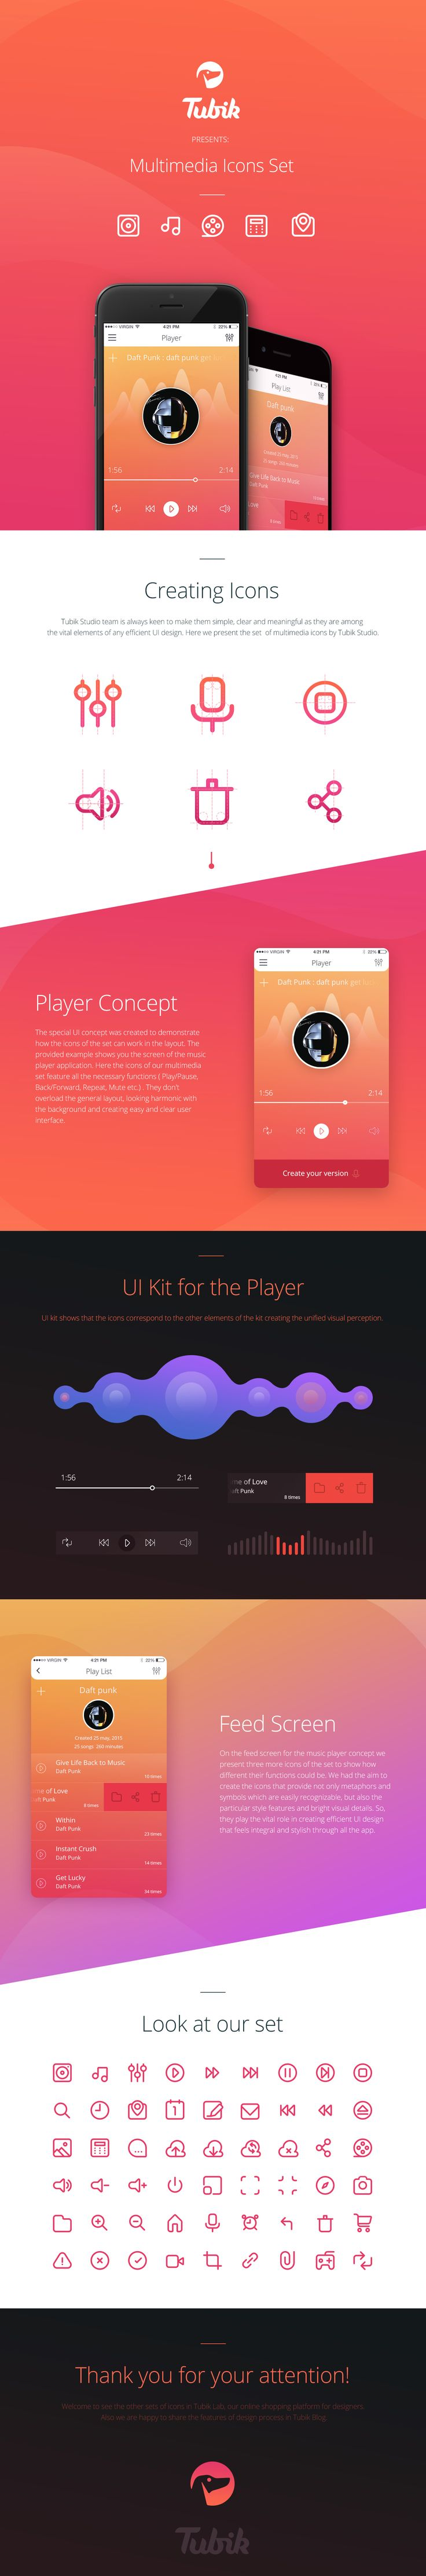 Hey guys! Here is a presentation of the whole process of Player App creation, including a study on the Multimedia Icons Set used in this design. There's also a UI kit section depicting the core interface elements used to build up this player the way it lo…